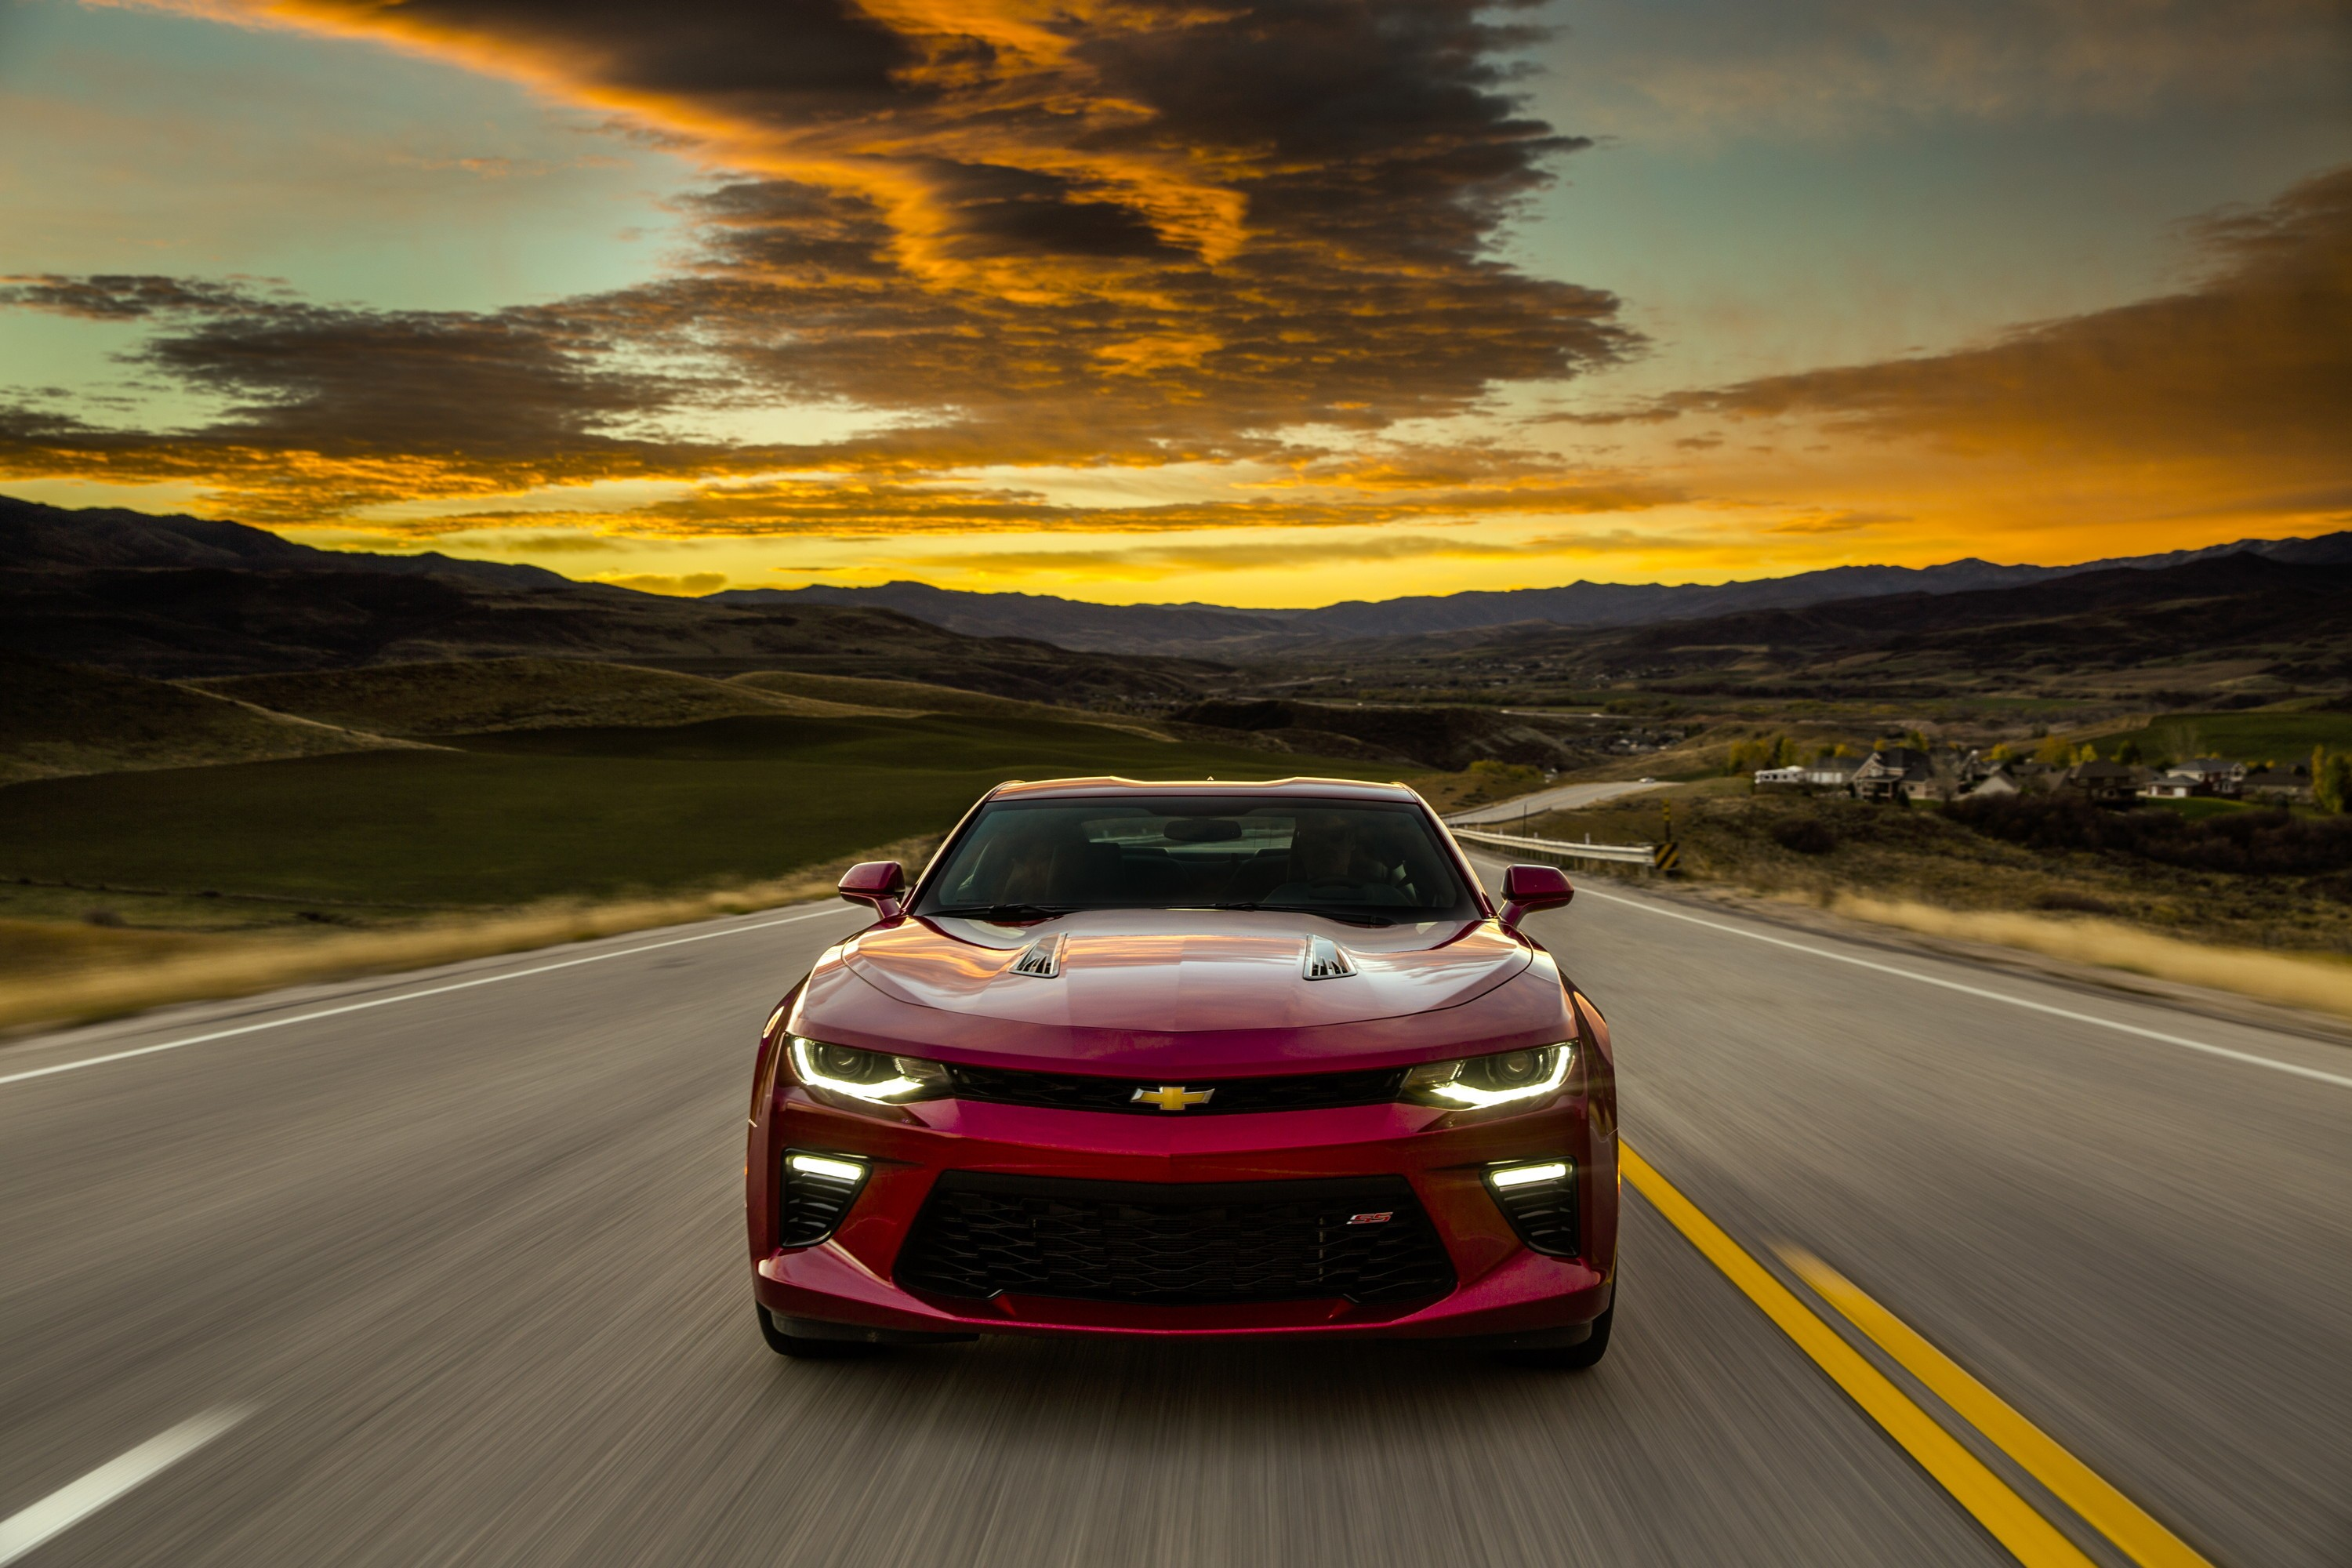 Wallpaper Chevrolet Camaro Europe Version Red Sunset Cars Bikes